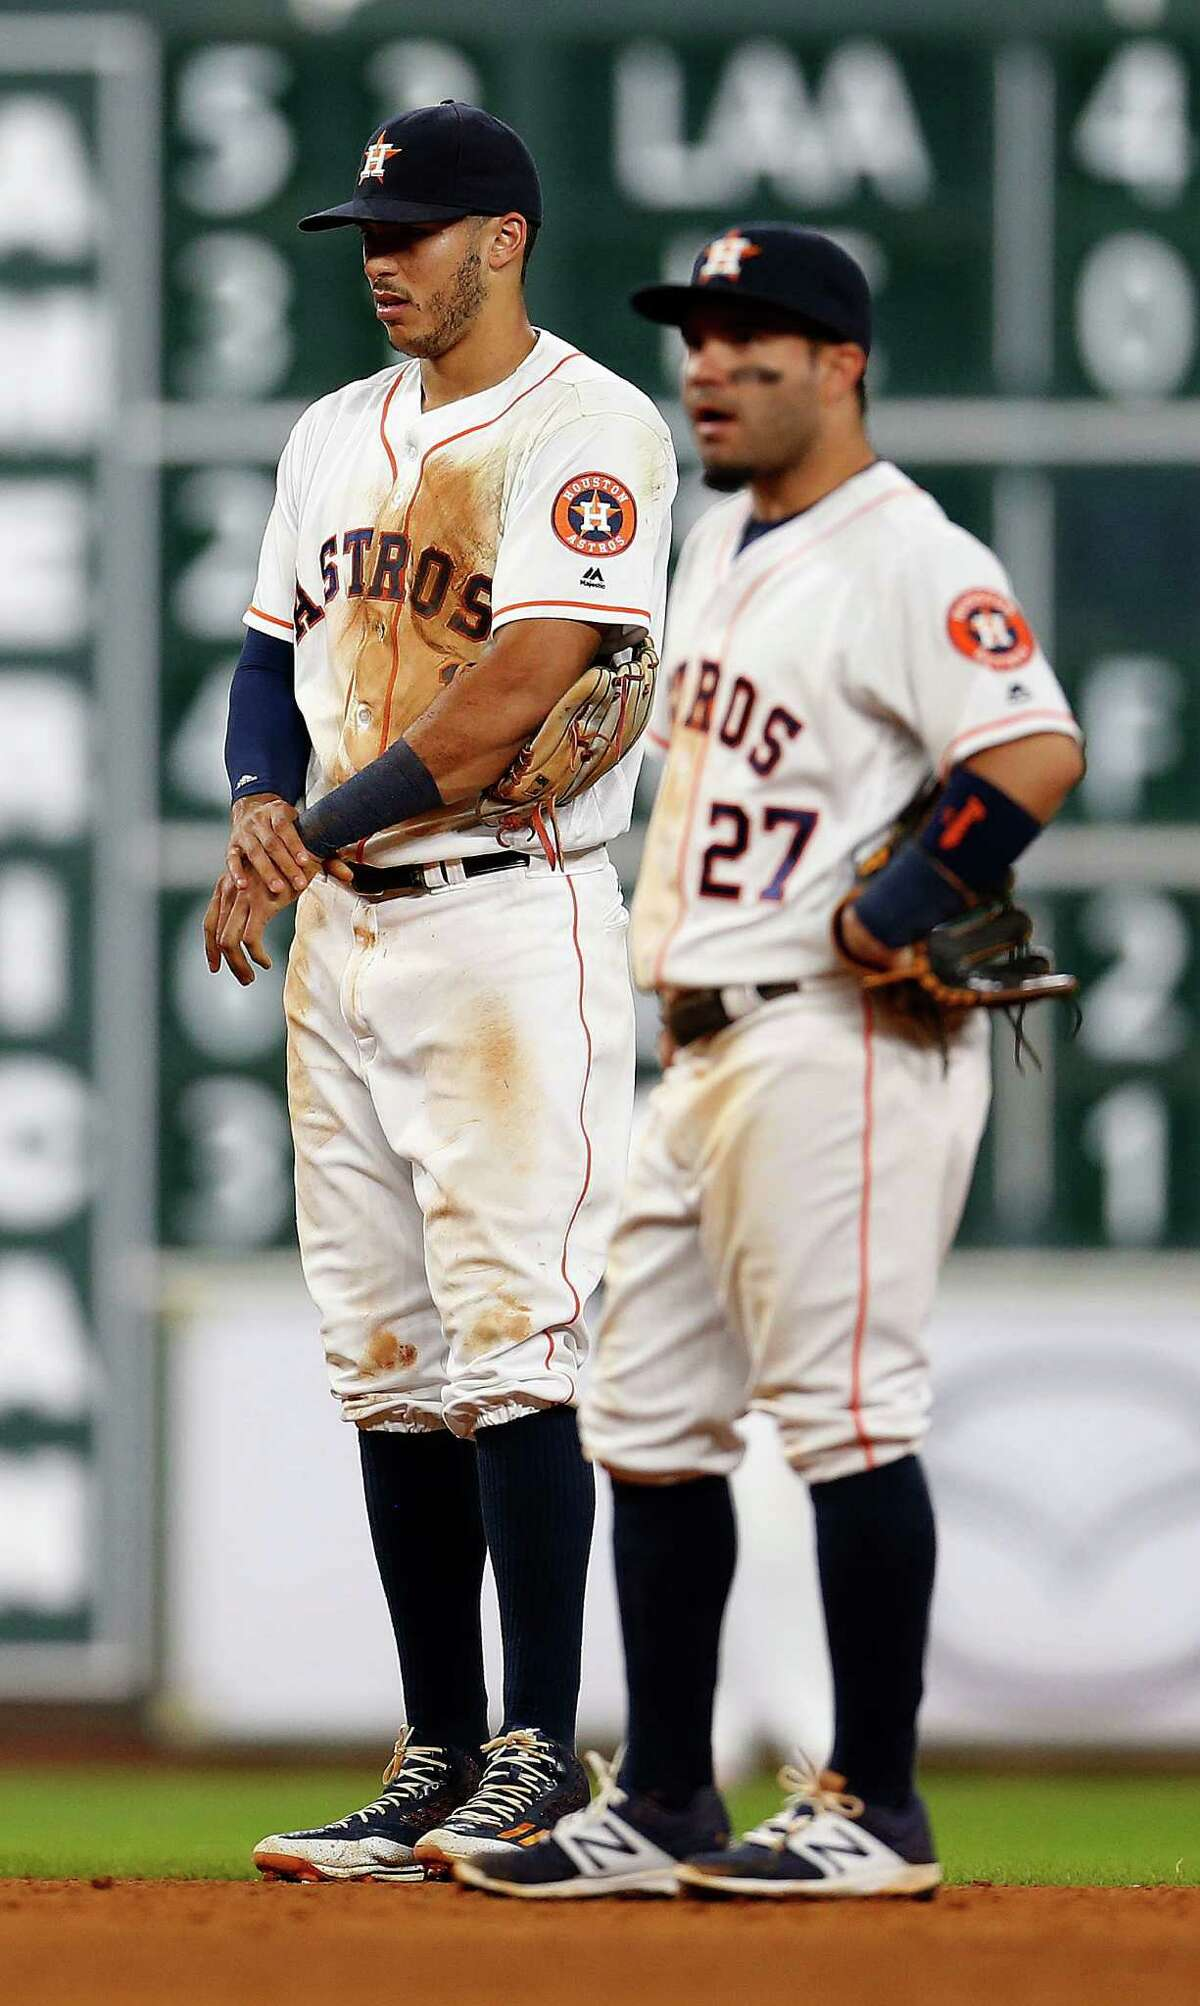 Houston Astros shortstop Carlos Correa (1) holds his wrist after falling on his arm fielding a single by Yankees Carlos Beltran during the ninth inning of an MLB game at Minute Maid Park, Monday, July 25, 2016, in Houston.